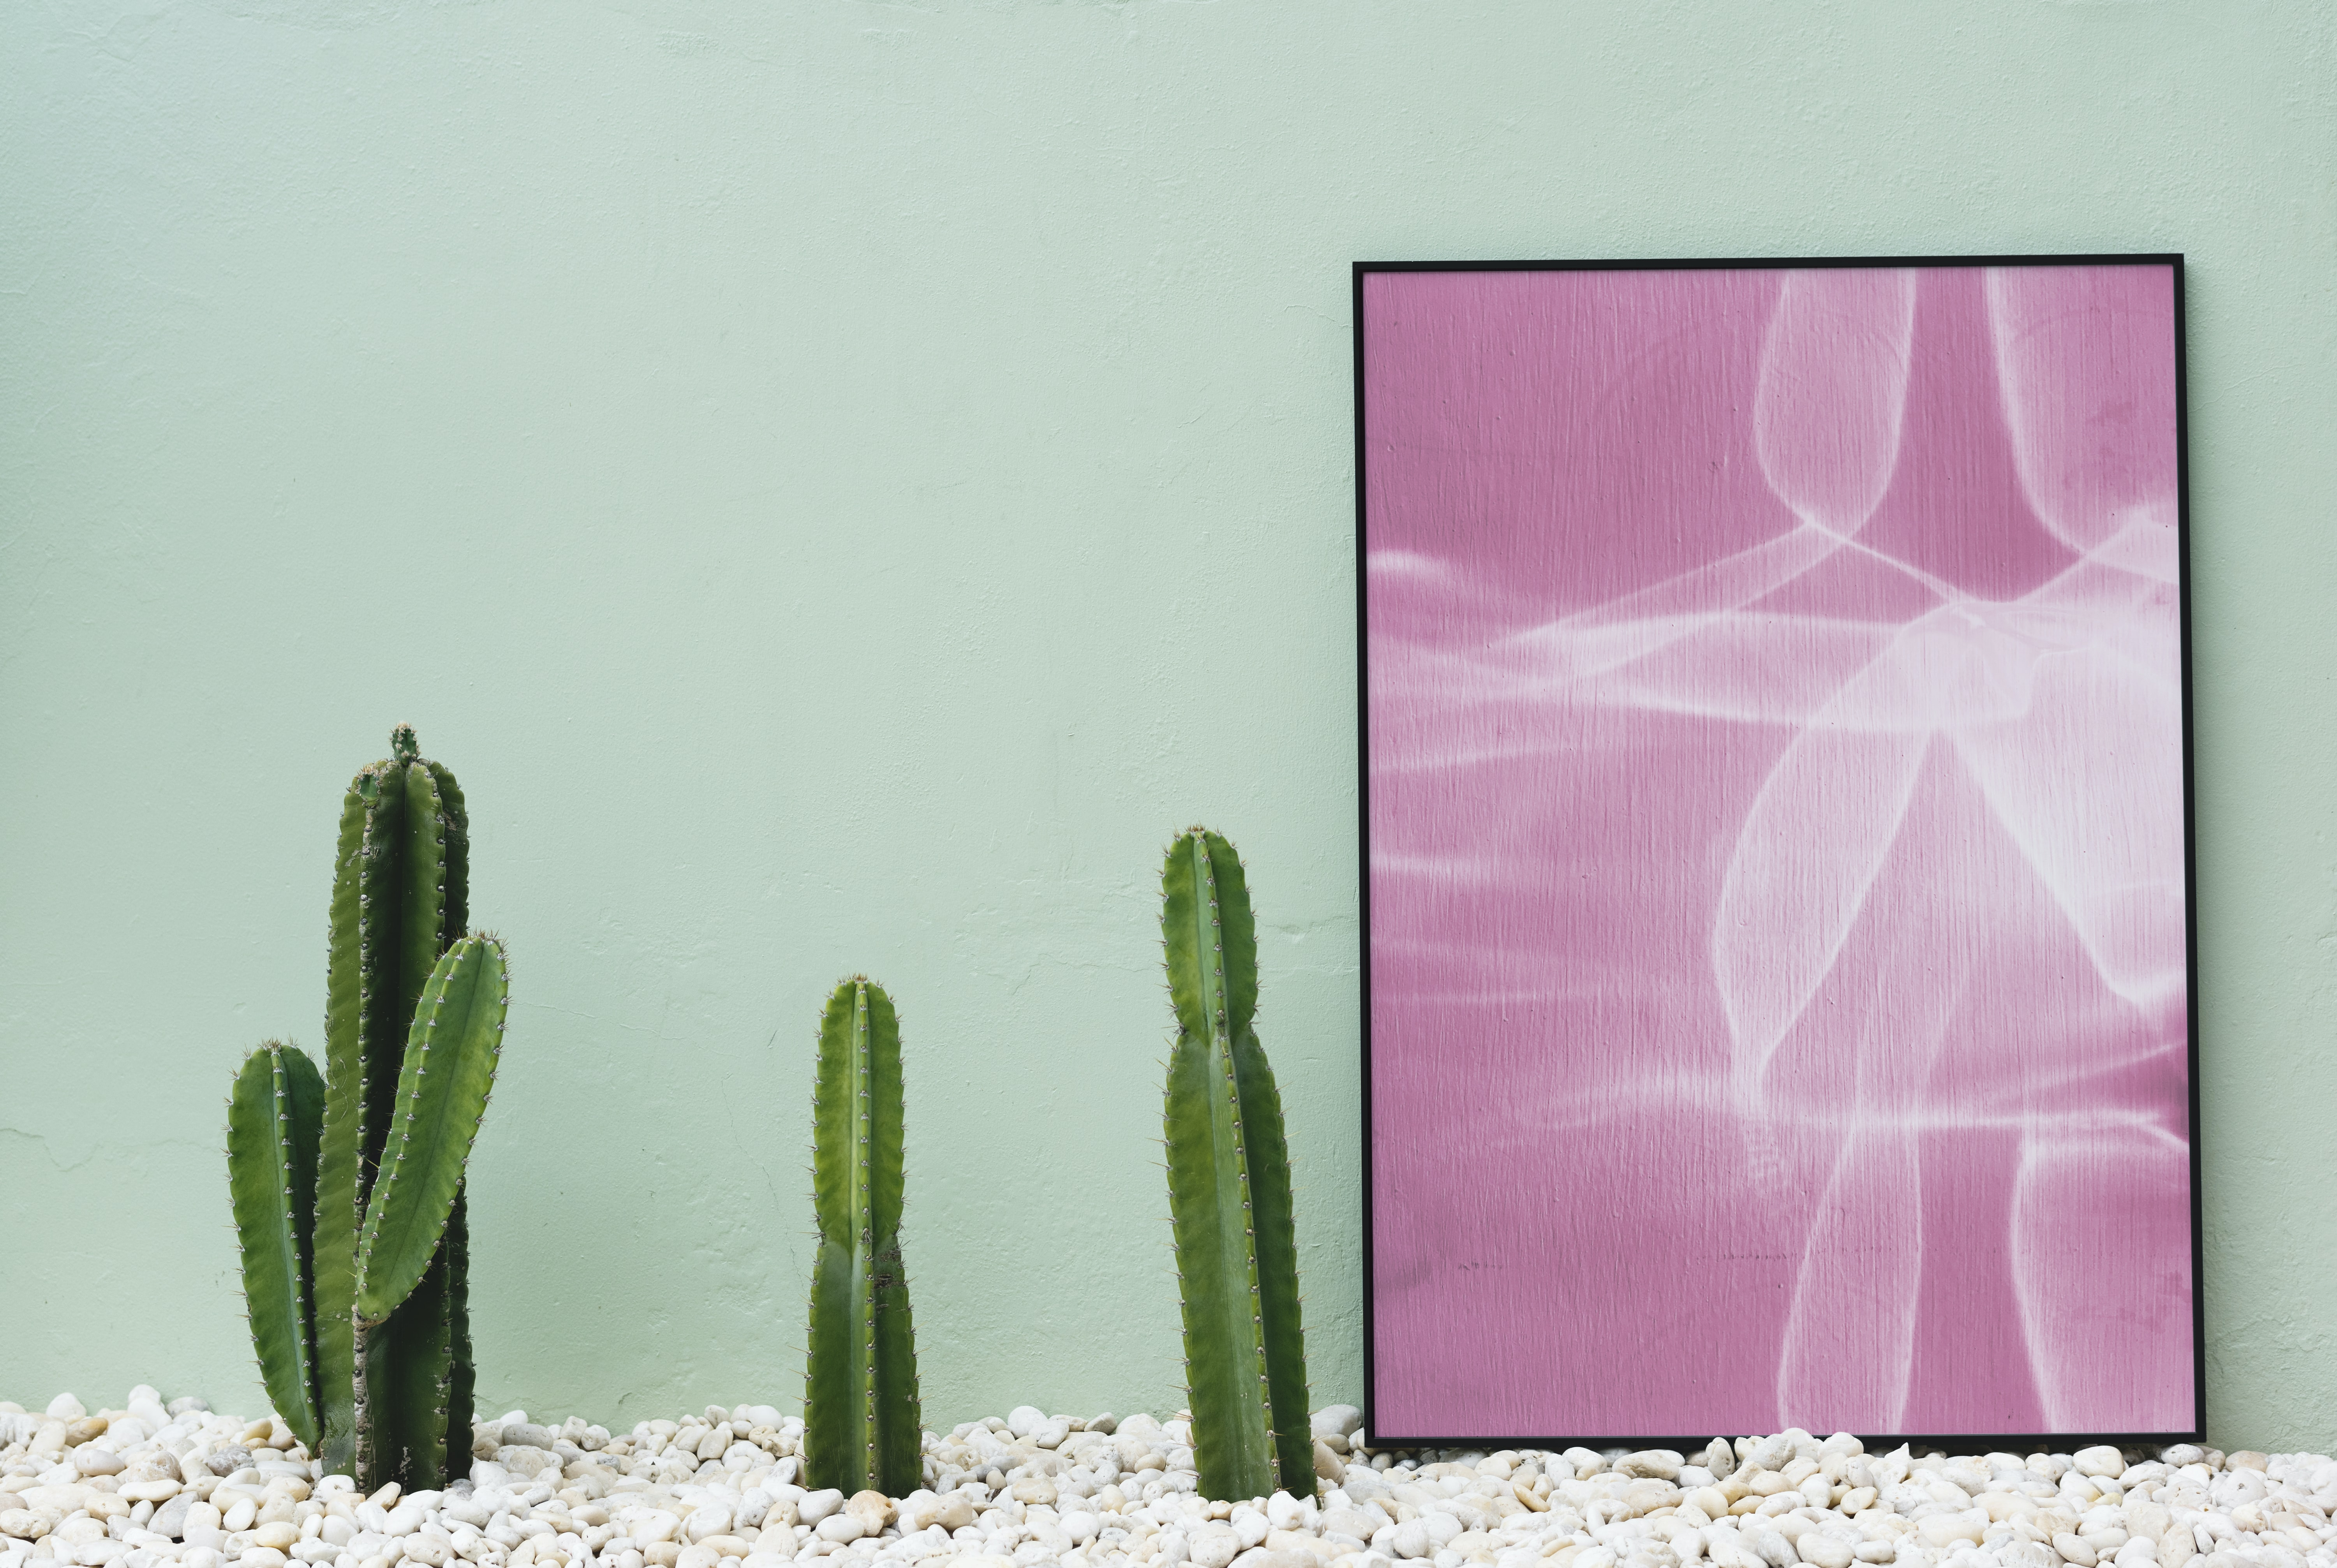 three cacti and pink abstract painting against teal wall